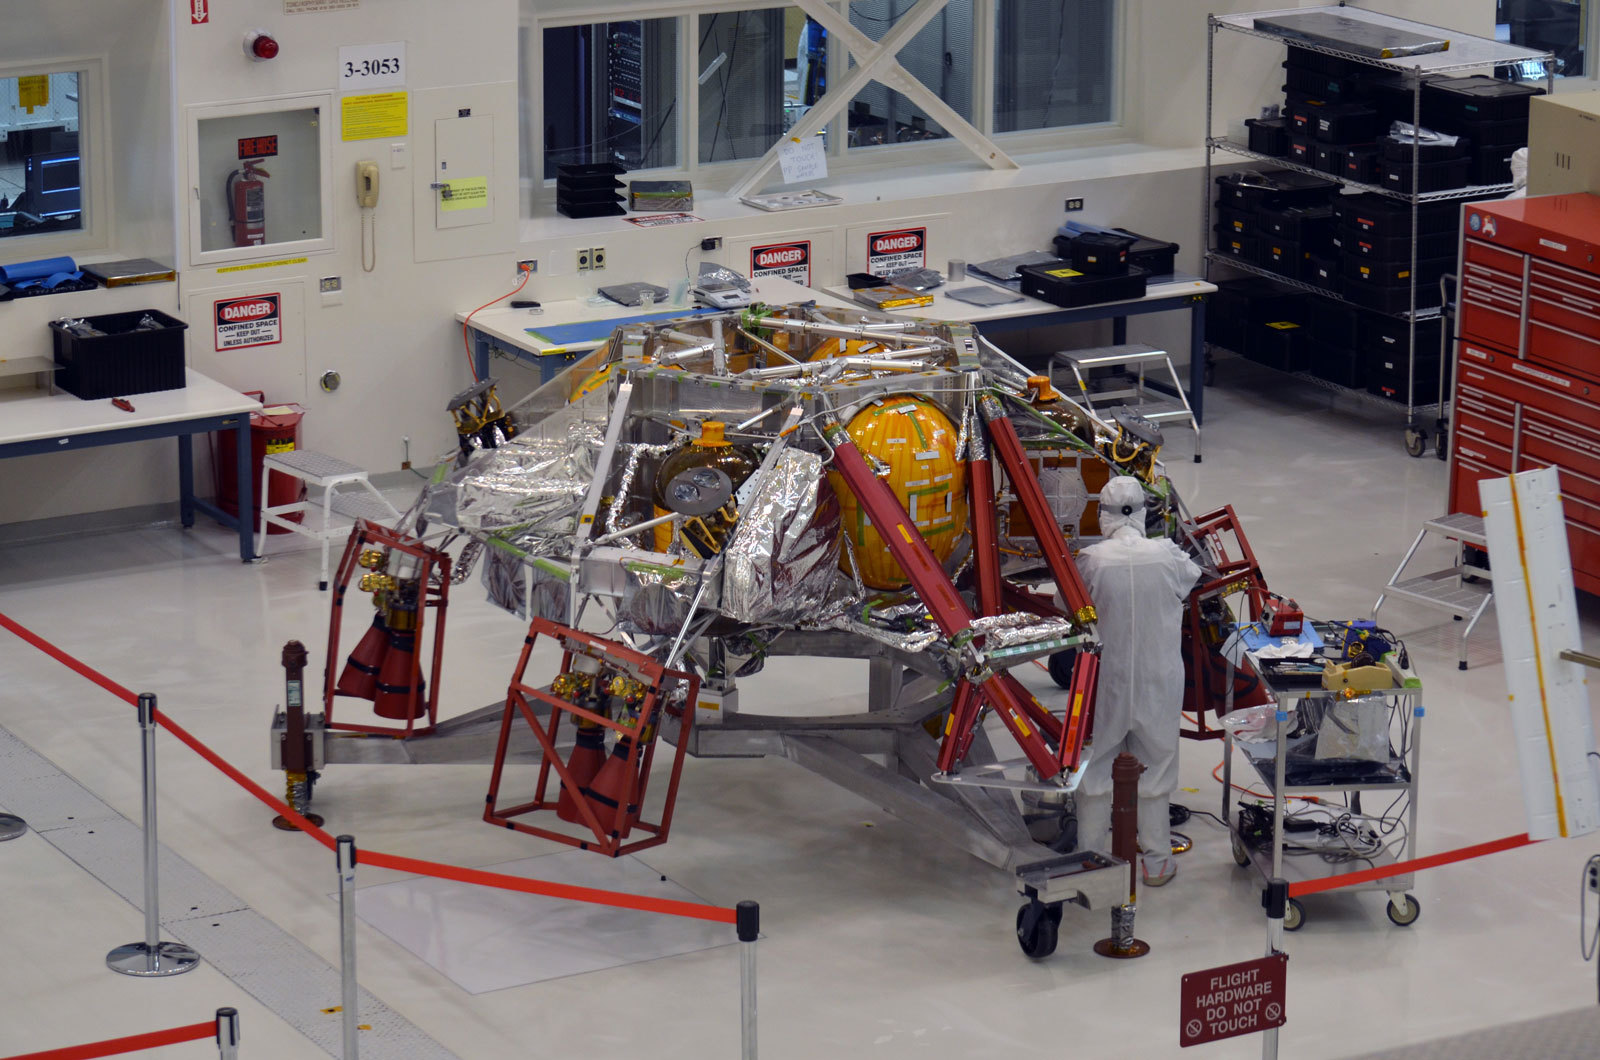 A technician works on the descent stage for NASA's Mars 2020 mission inside JPL's Spacecraft Assembly Facility.